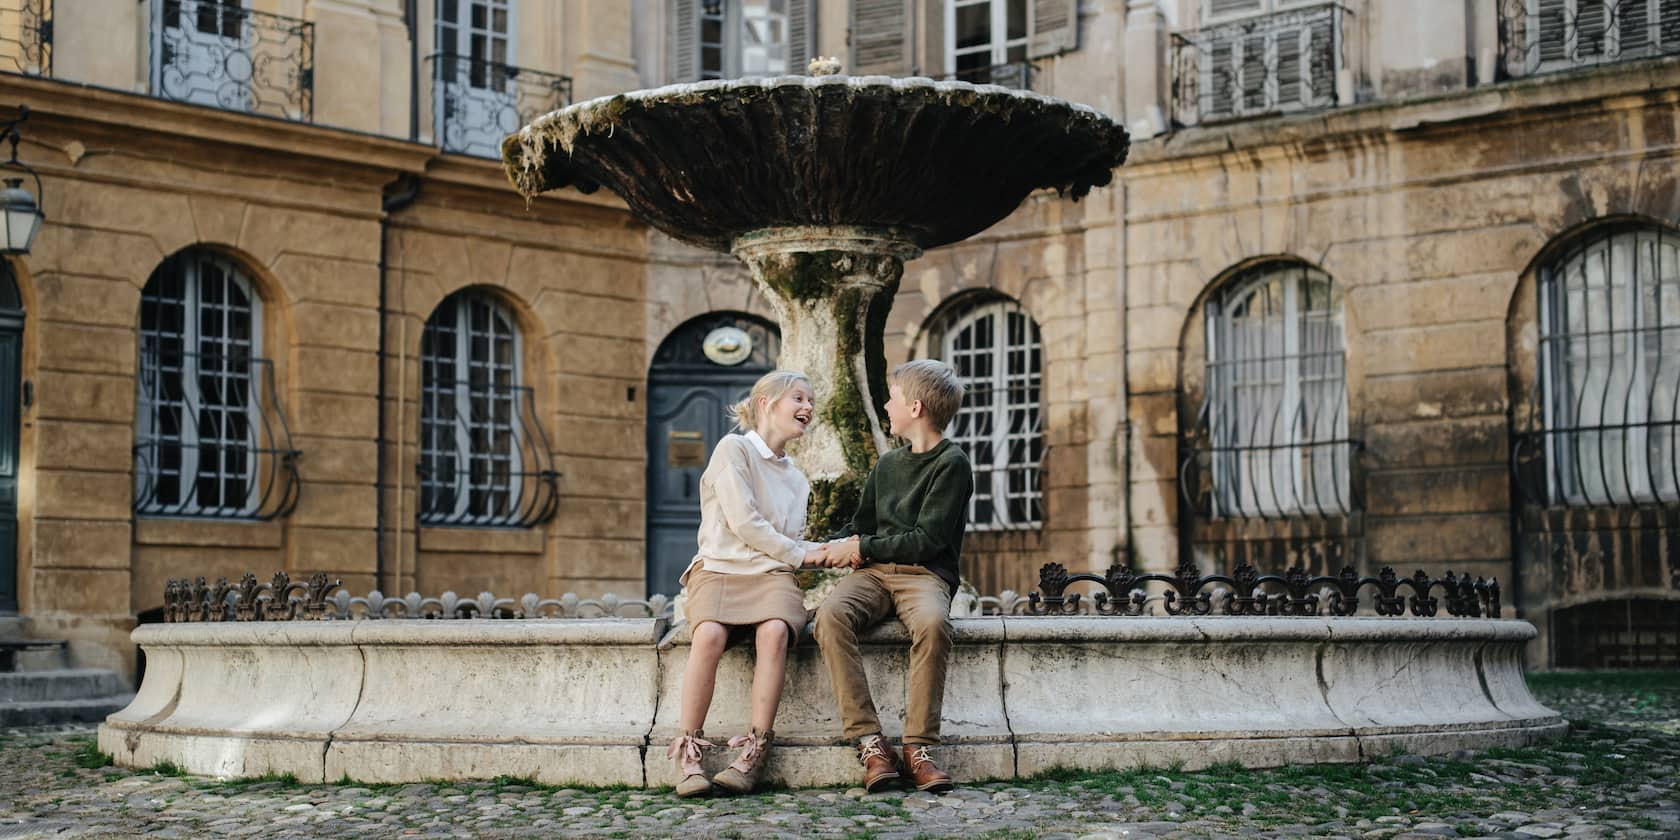 A young boy and girl sit on a fountain in a courtyard holding hands